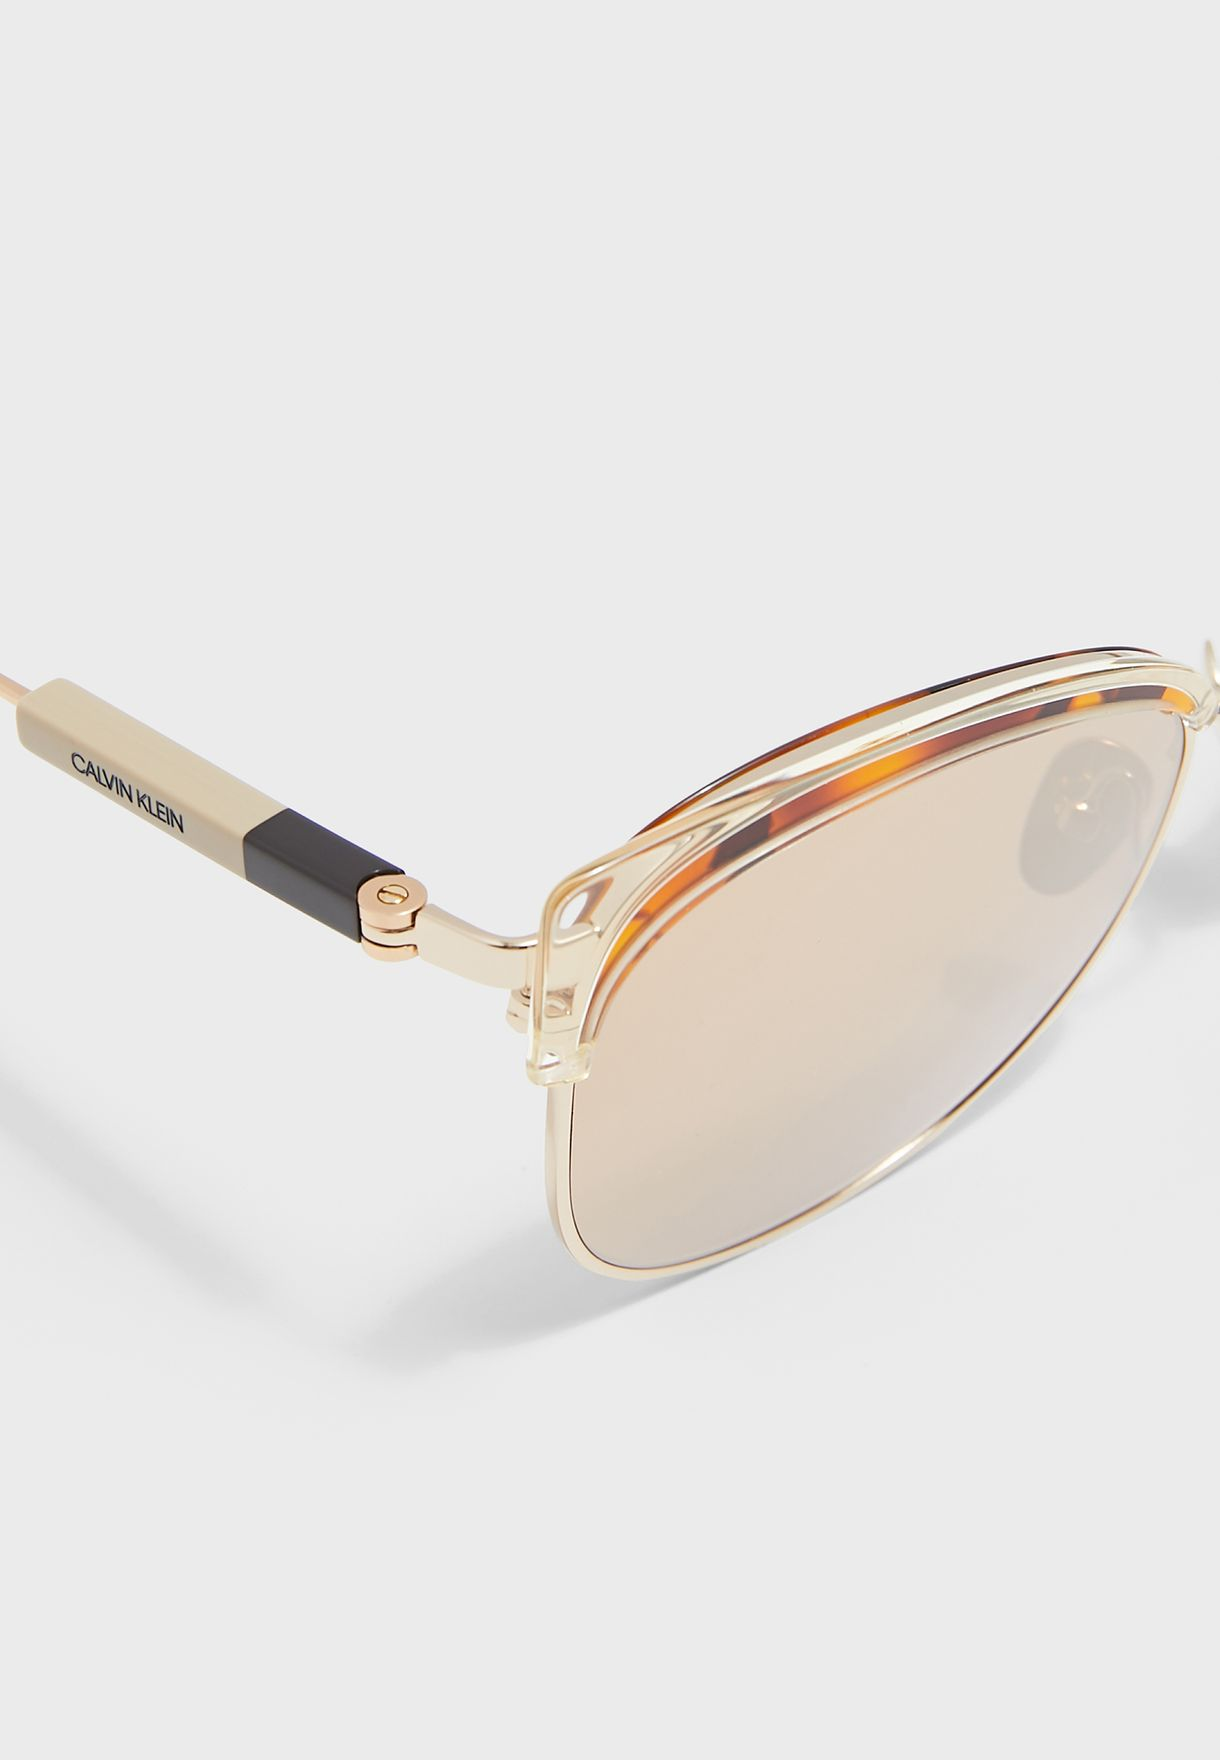 CK19701S Butterfly Sunglasses